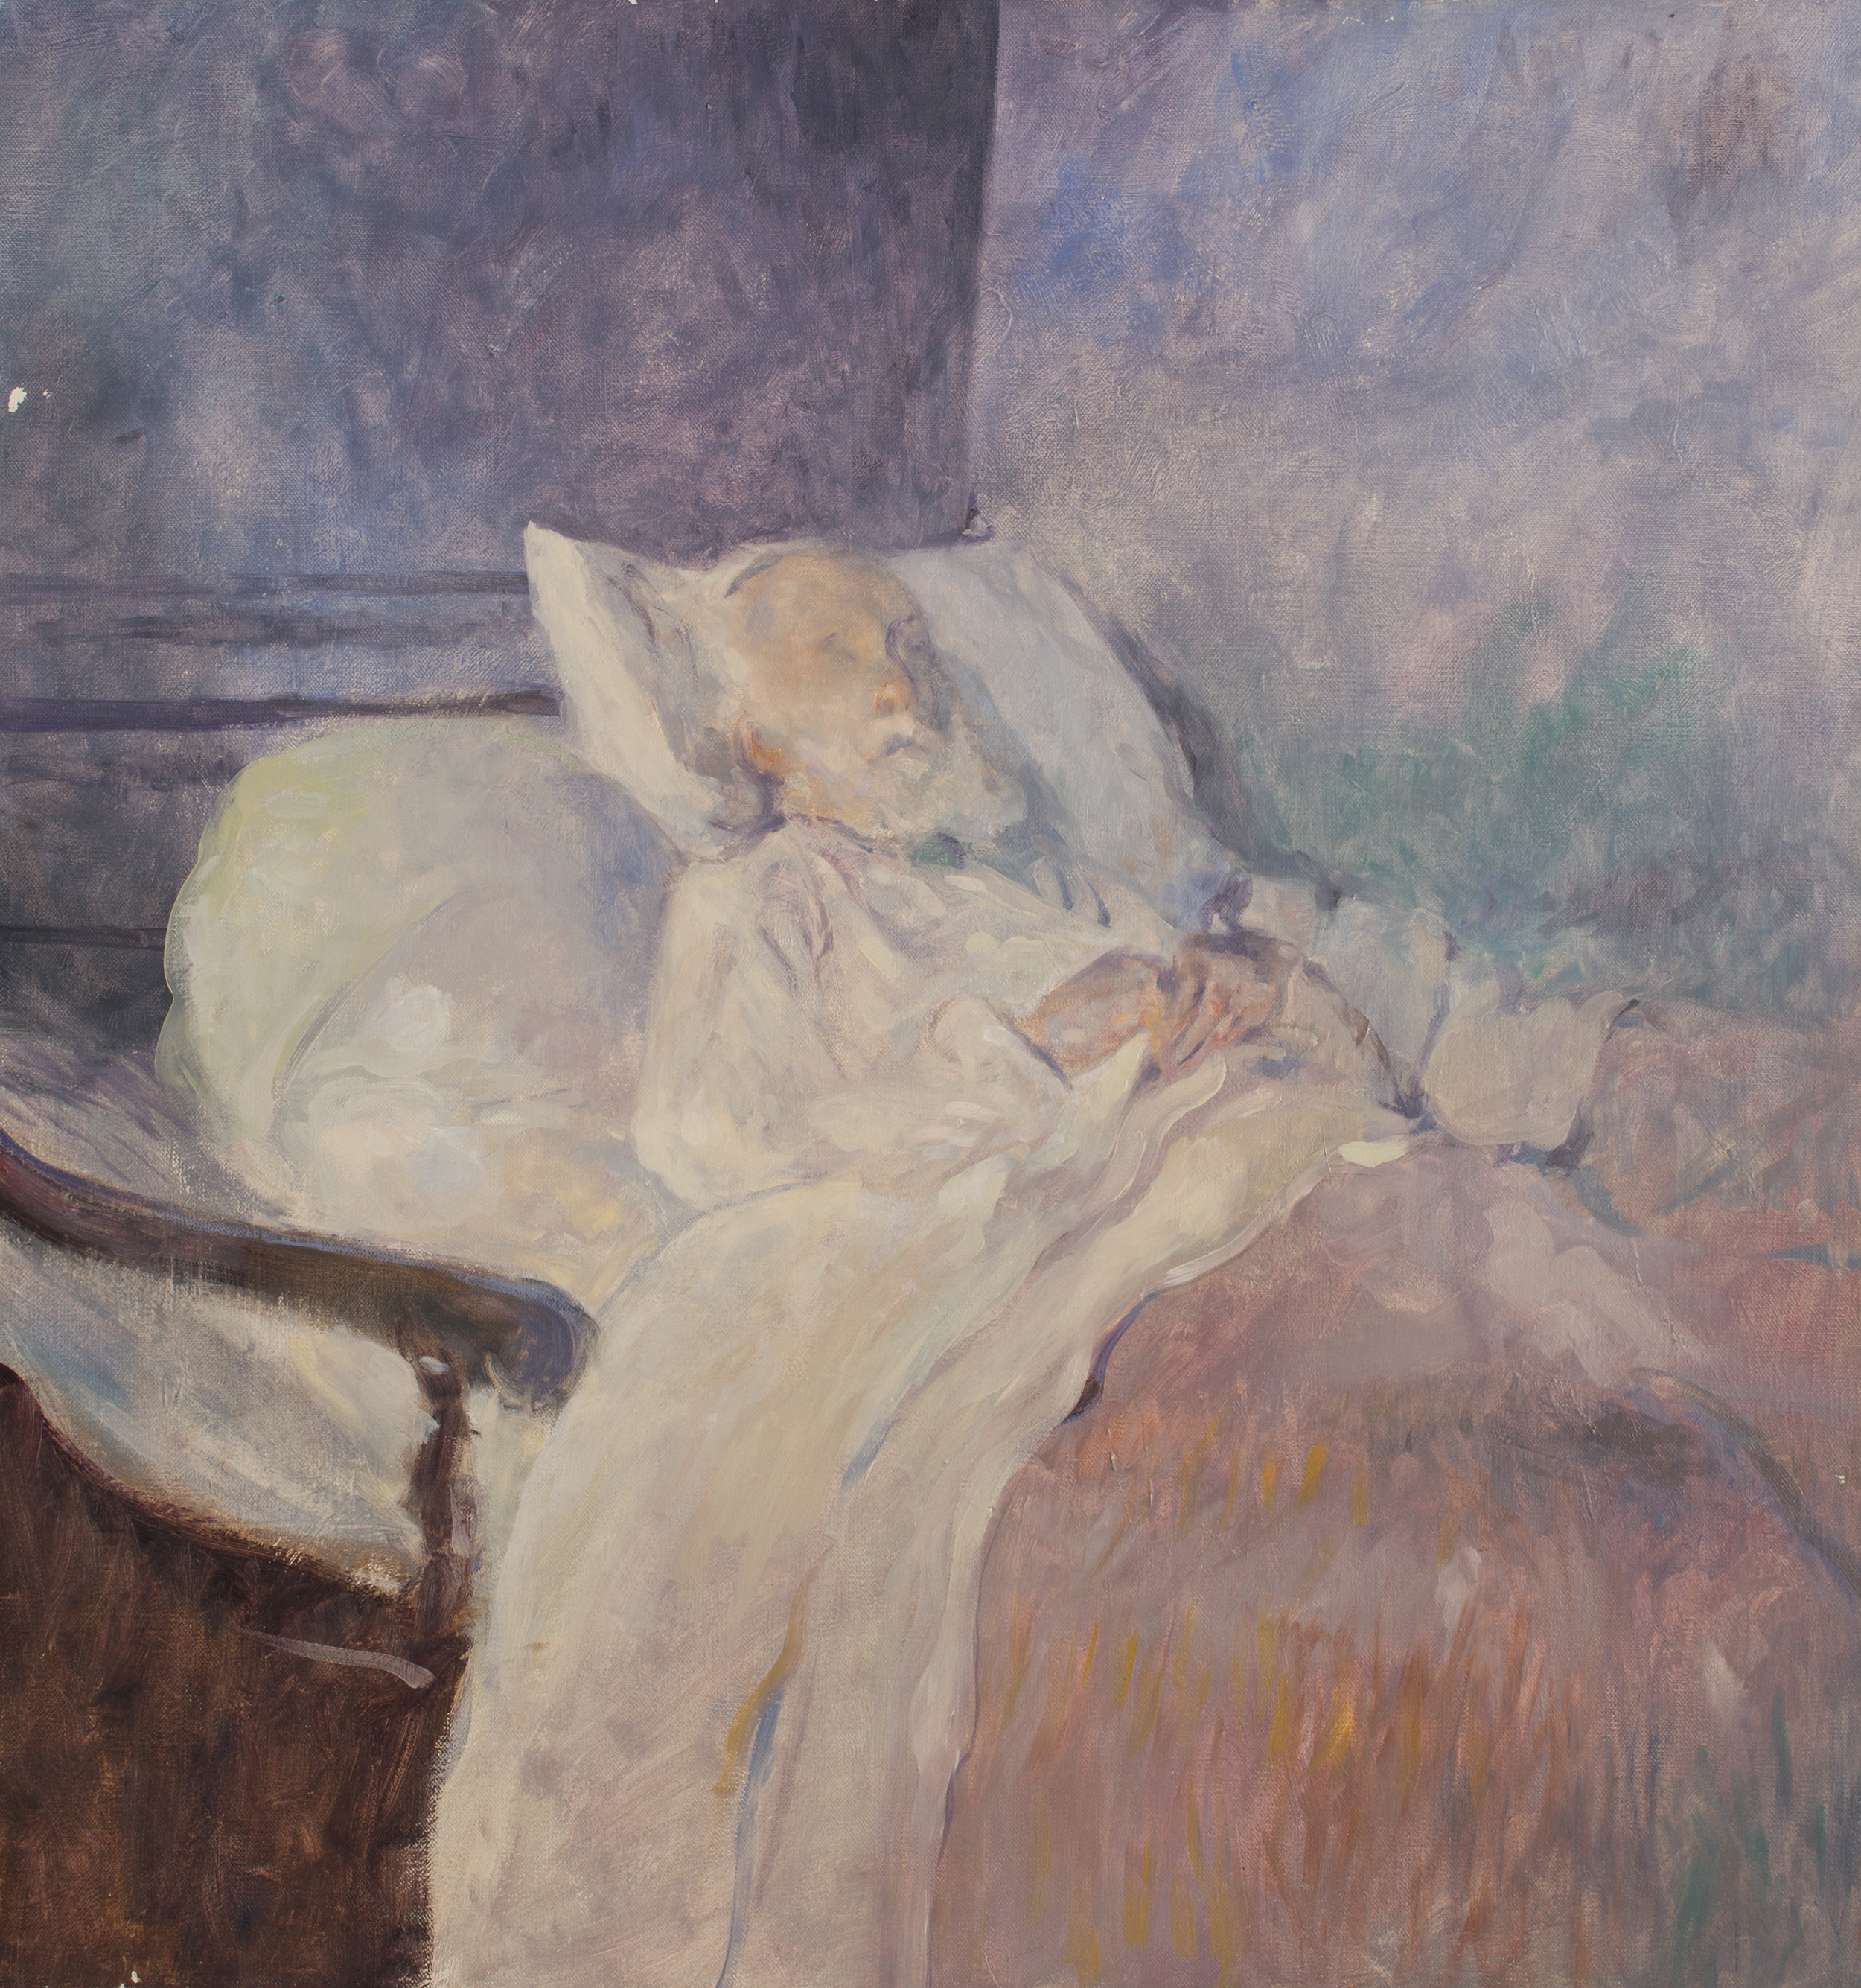 Degas on his deathbed